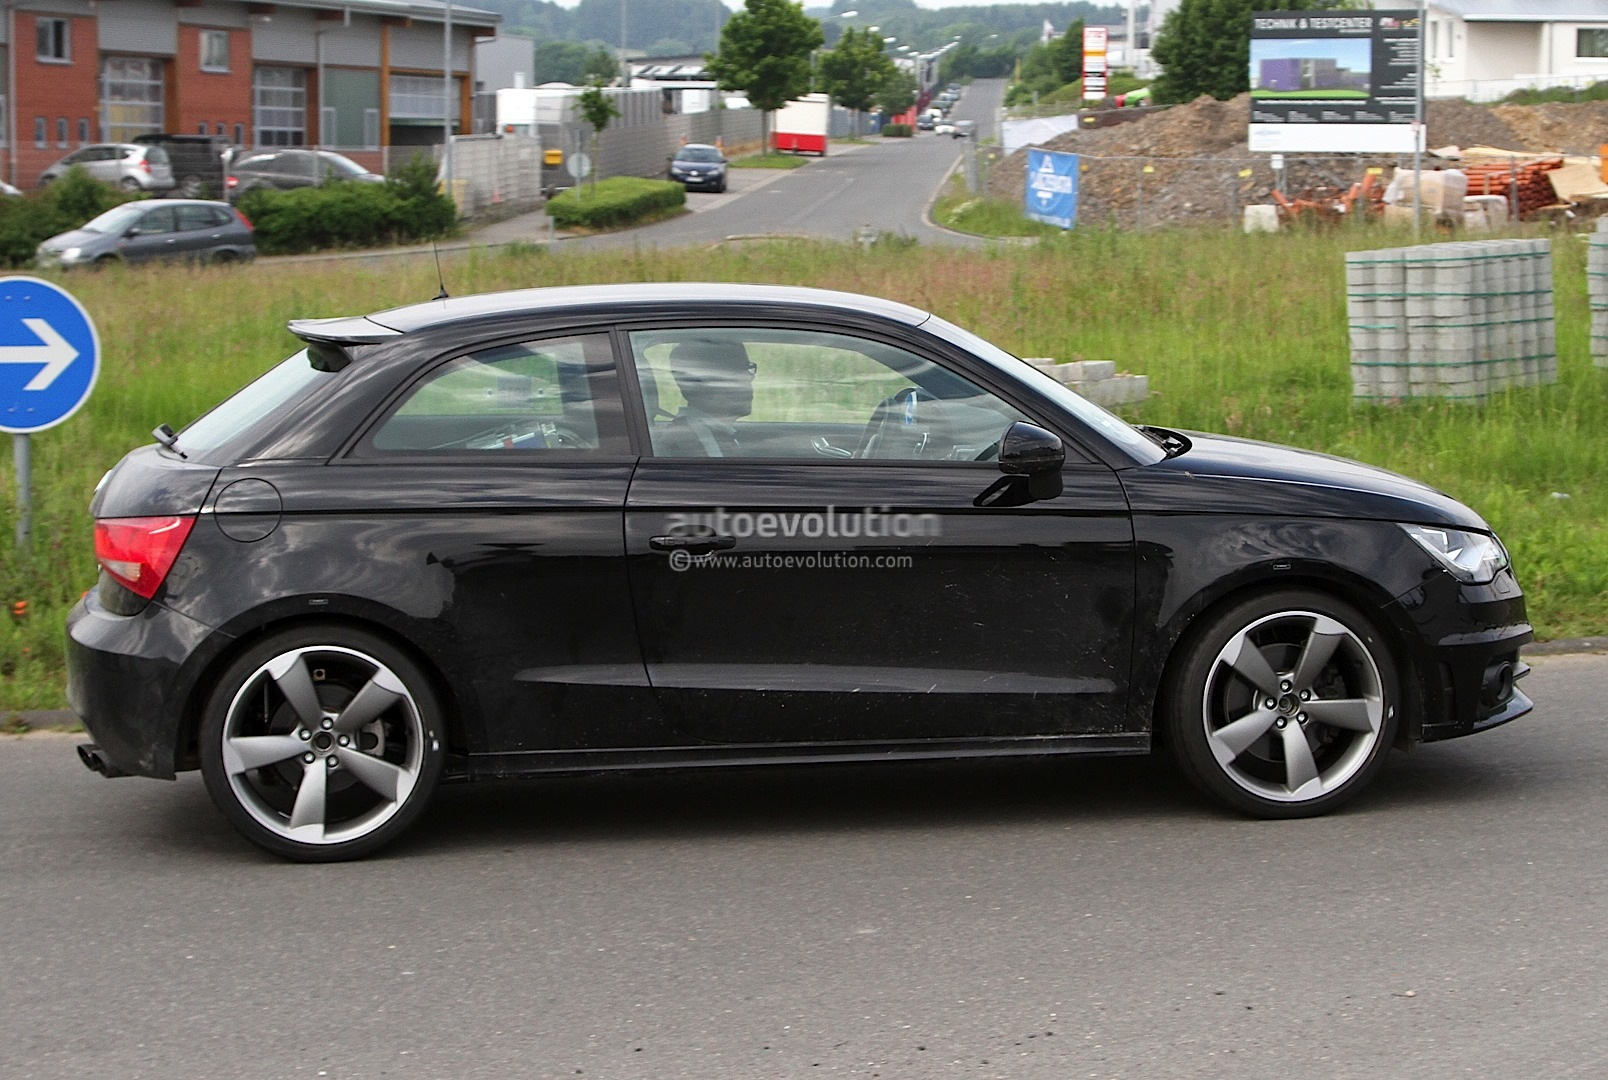 audi s1 spotted testing in latest spyshots autoevolution. Black Bedroom Furniture Sets. Home Design Ideas